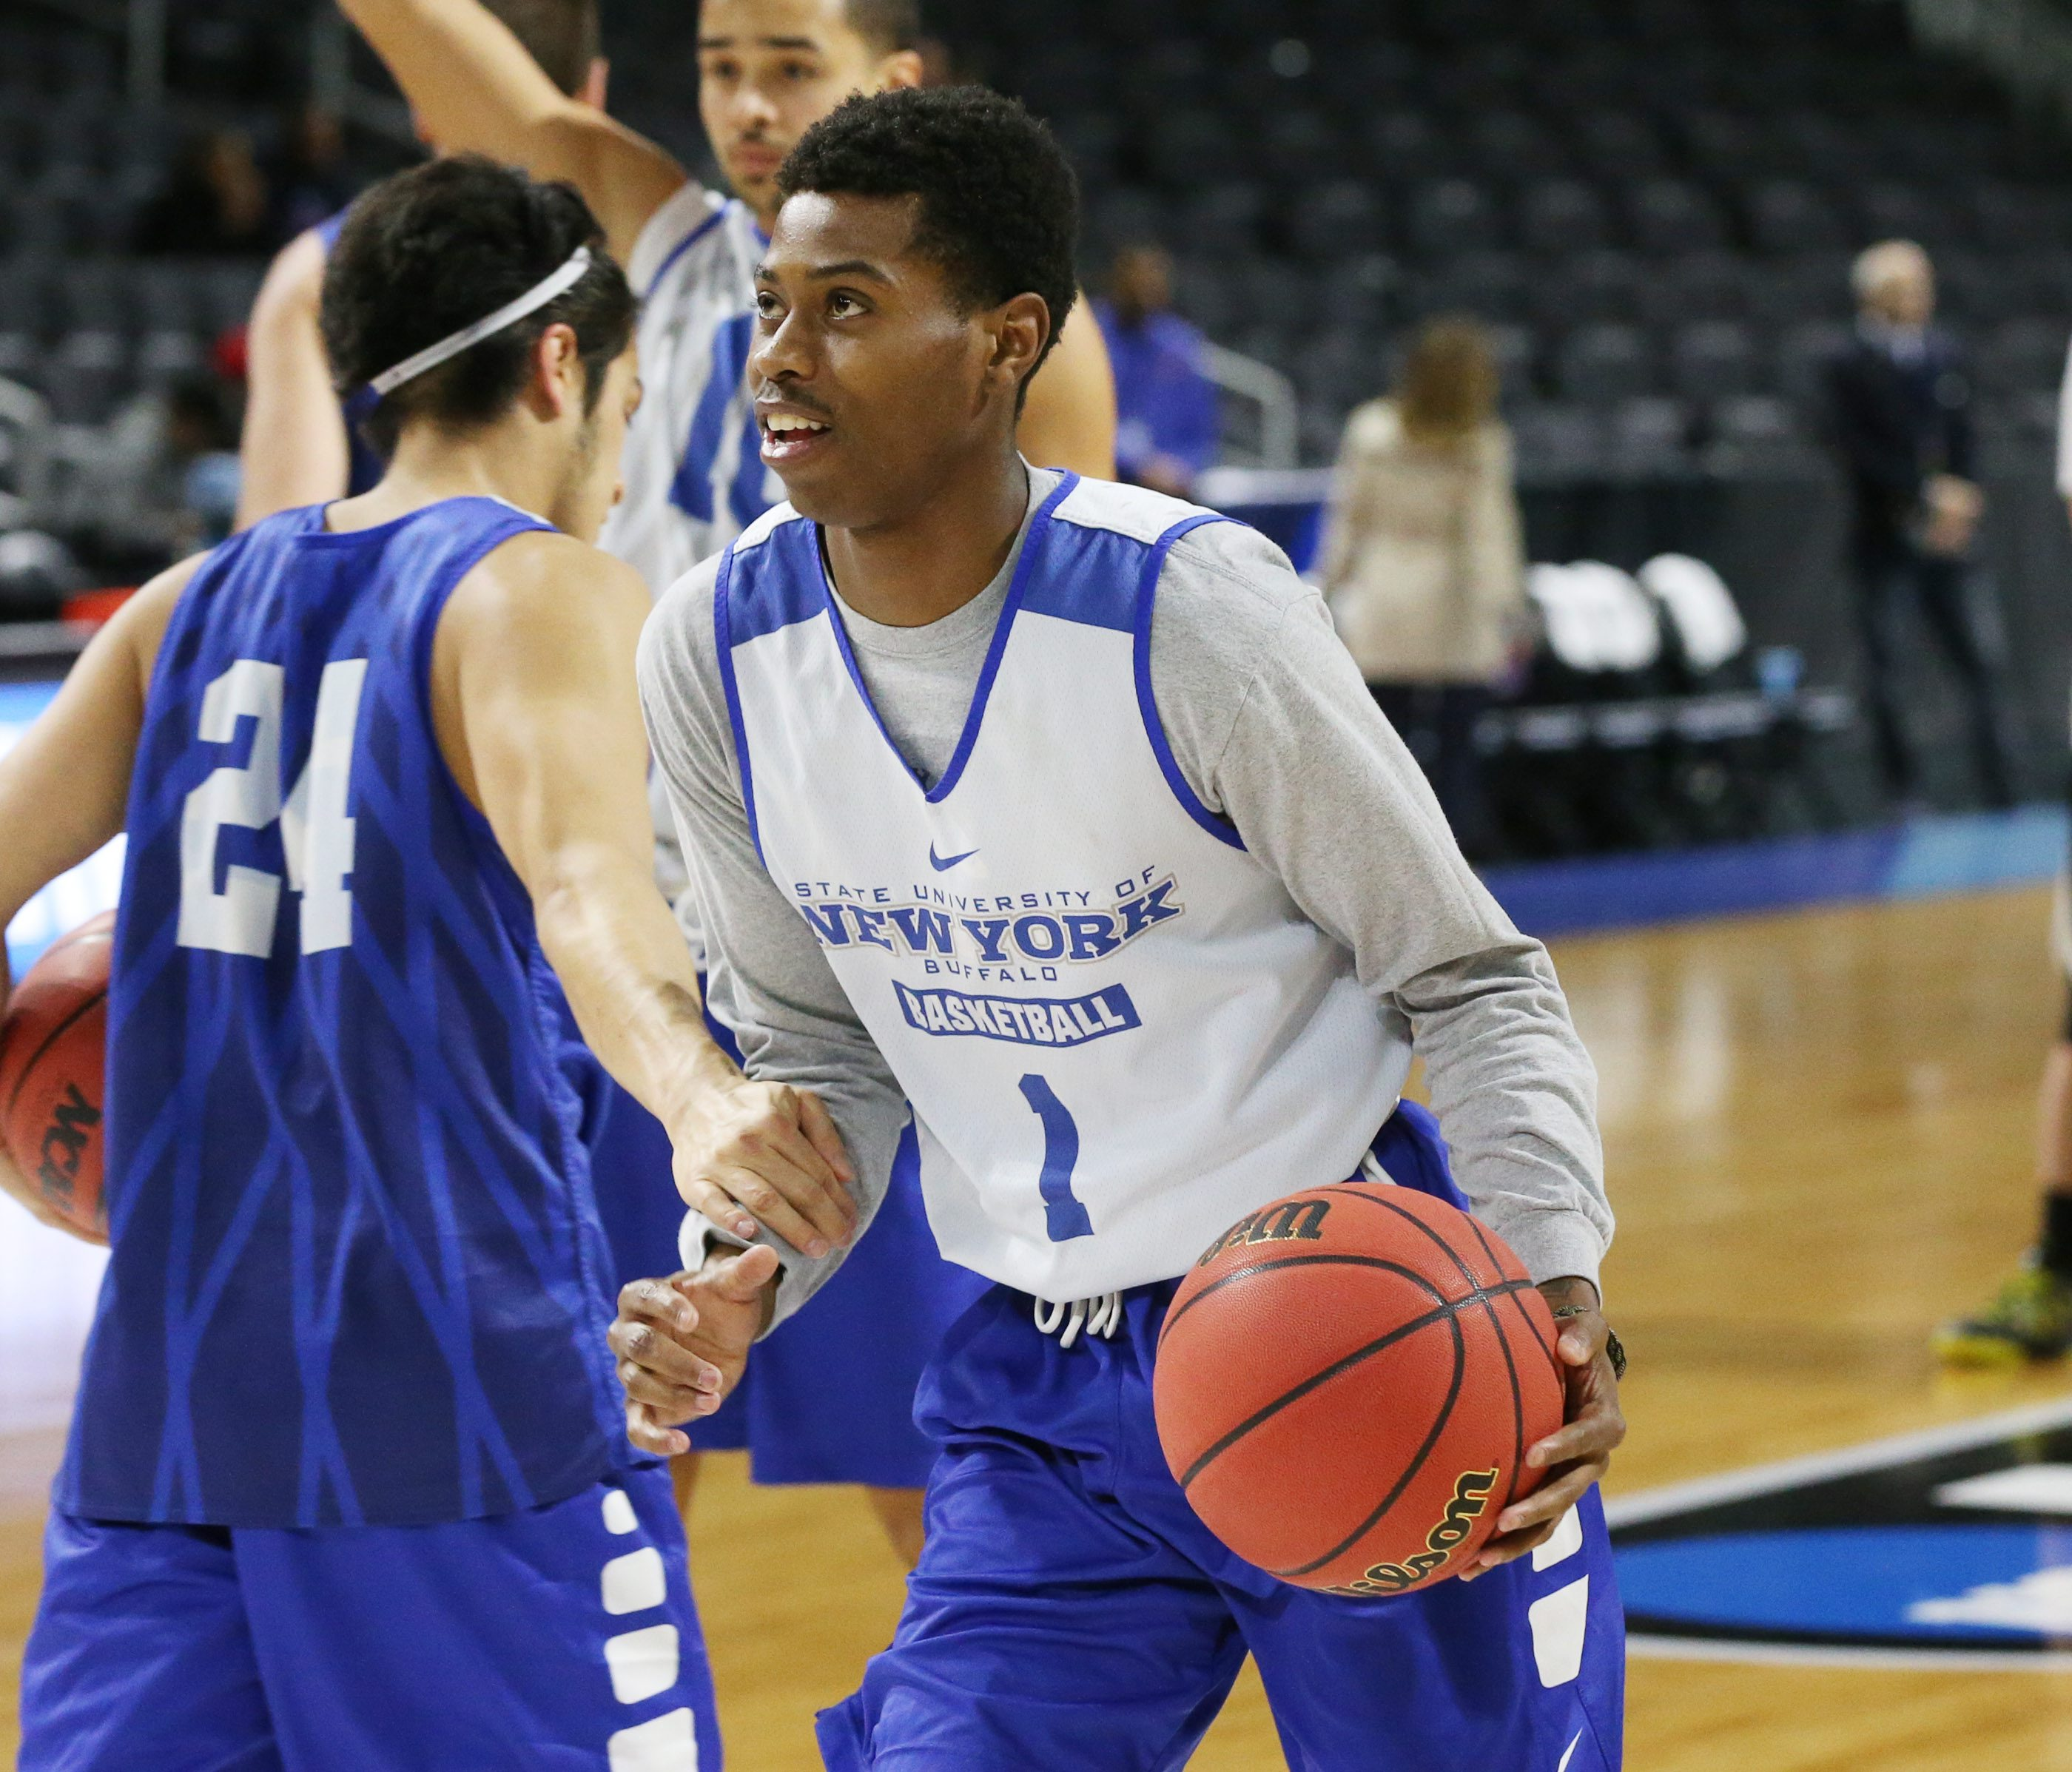 Lamonte Bearden (1) takes a shot during UB's NCAA Tournament practice at Dunkin' Donuts Center in Providence in March.  (James P. McCoy/ Buffalo News)